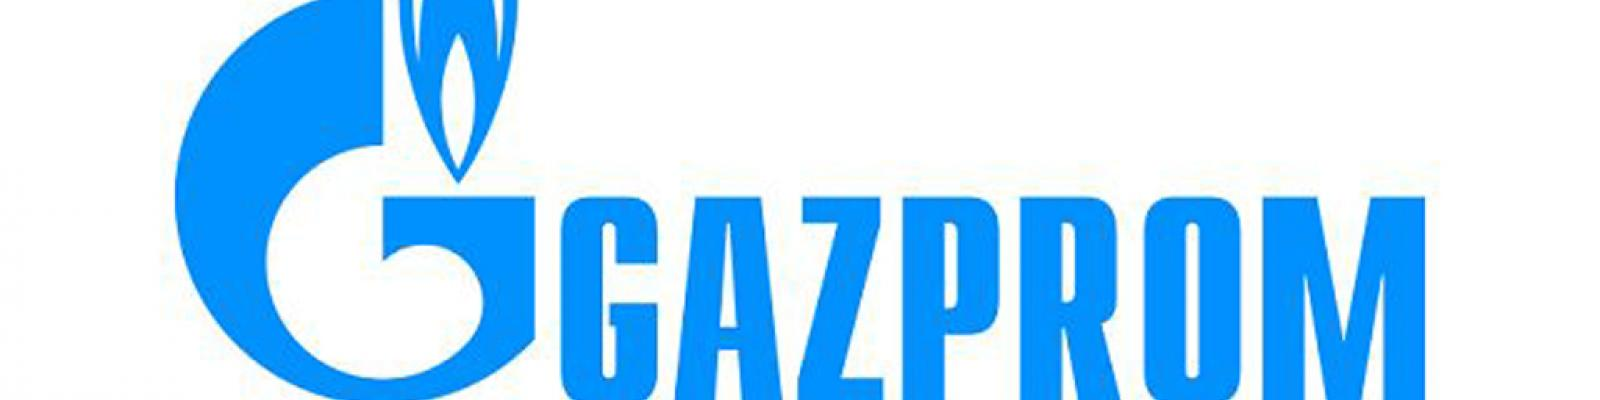 Gazprom's Uncertain Future